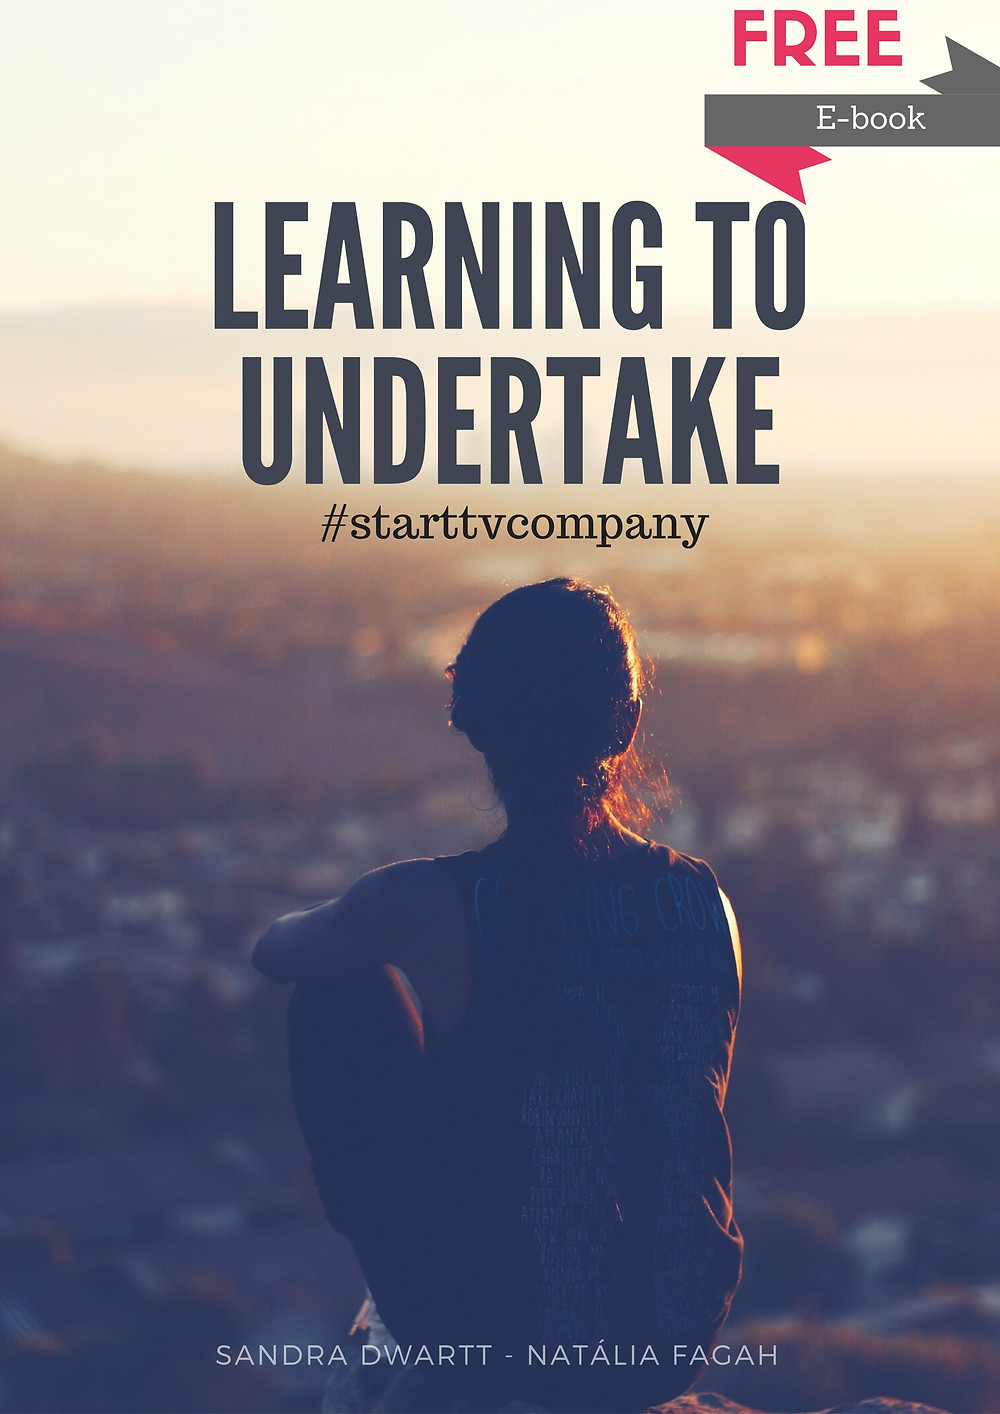 https://www.starttvcompany.com/product-page/e-book-free